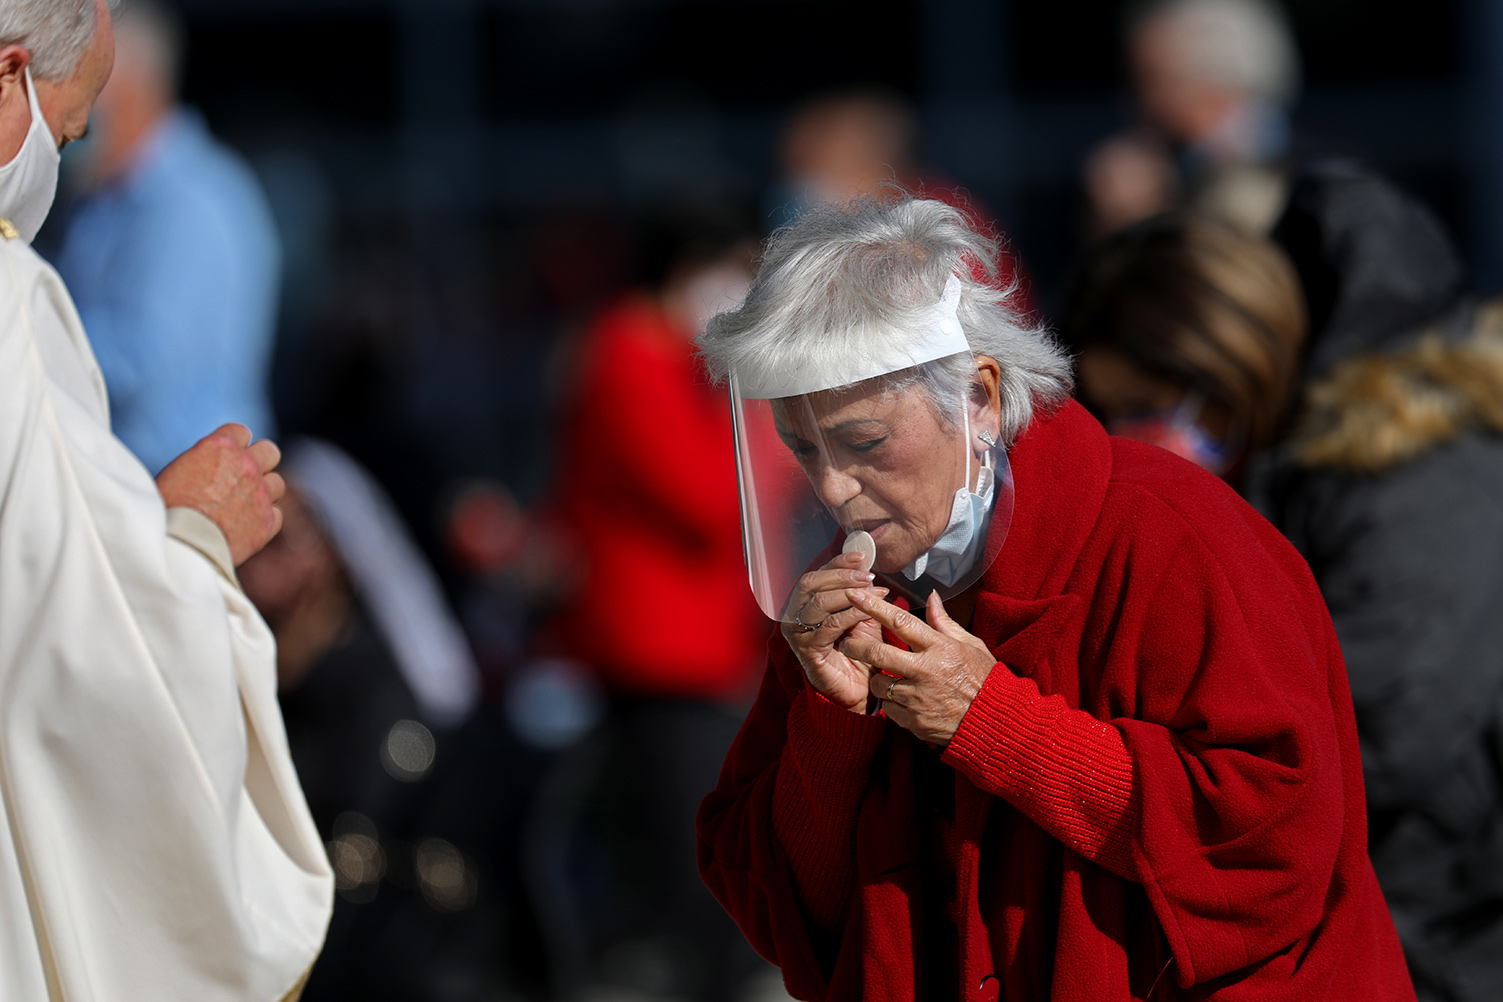 A parishioner takes communion while attending a Christmas Day mass given outdoors on Friday, Dec. 25, 2020 in Garden Grove, CA. Gary Coronado/Los Angeles Times via Getty Images.